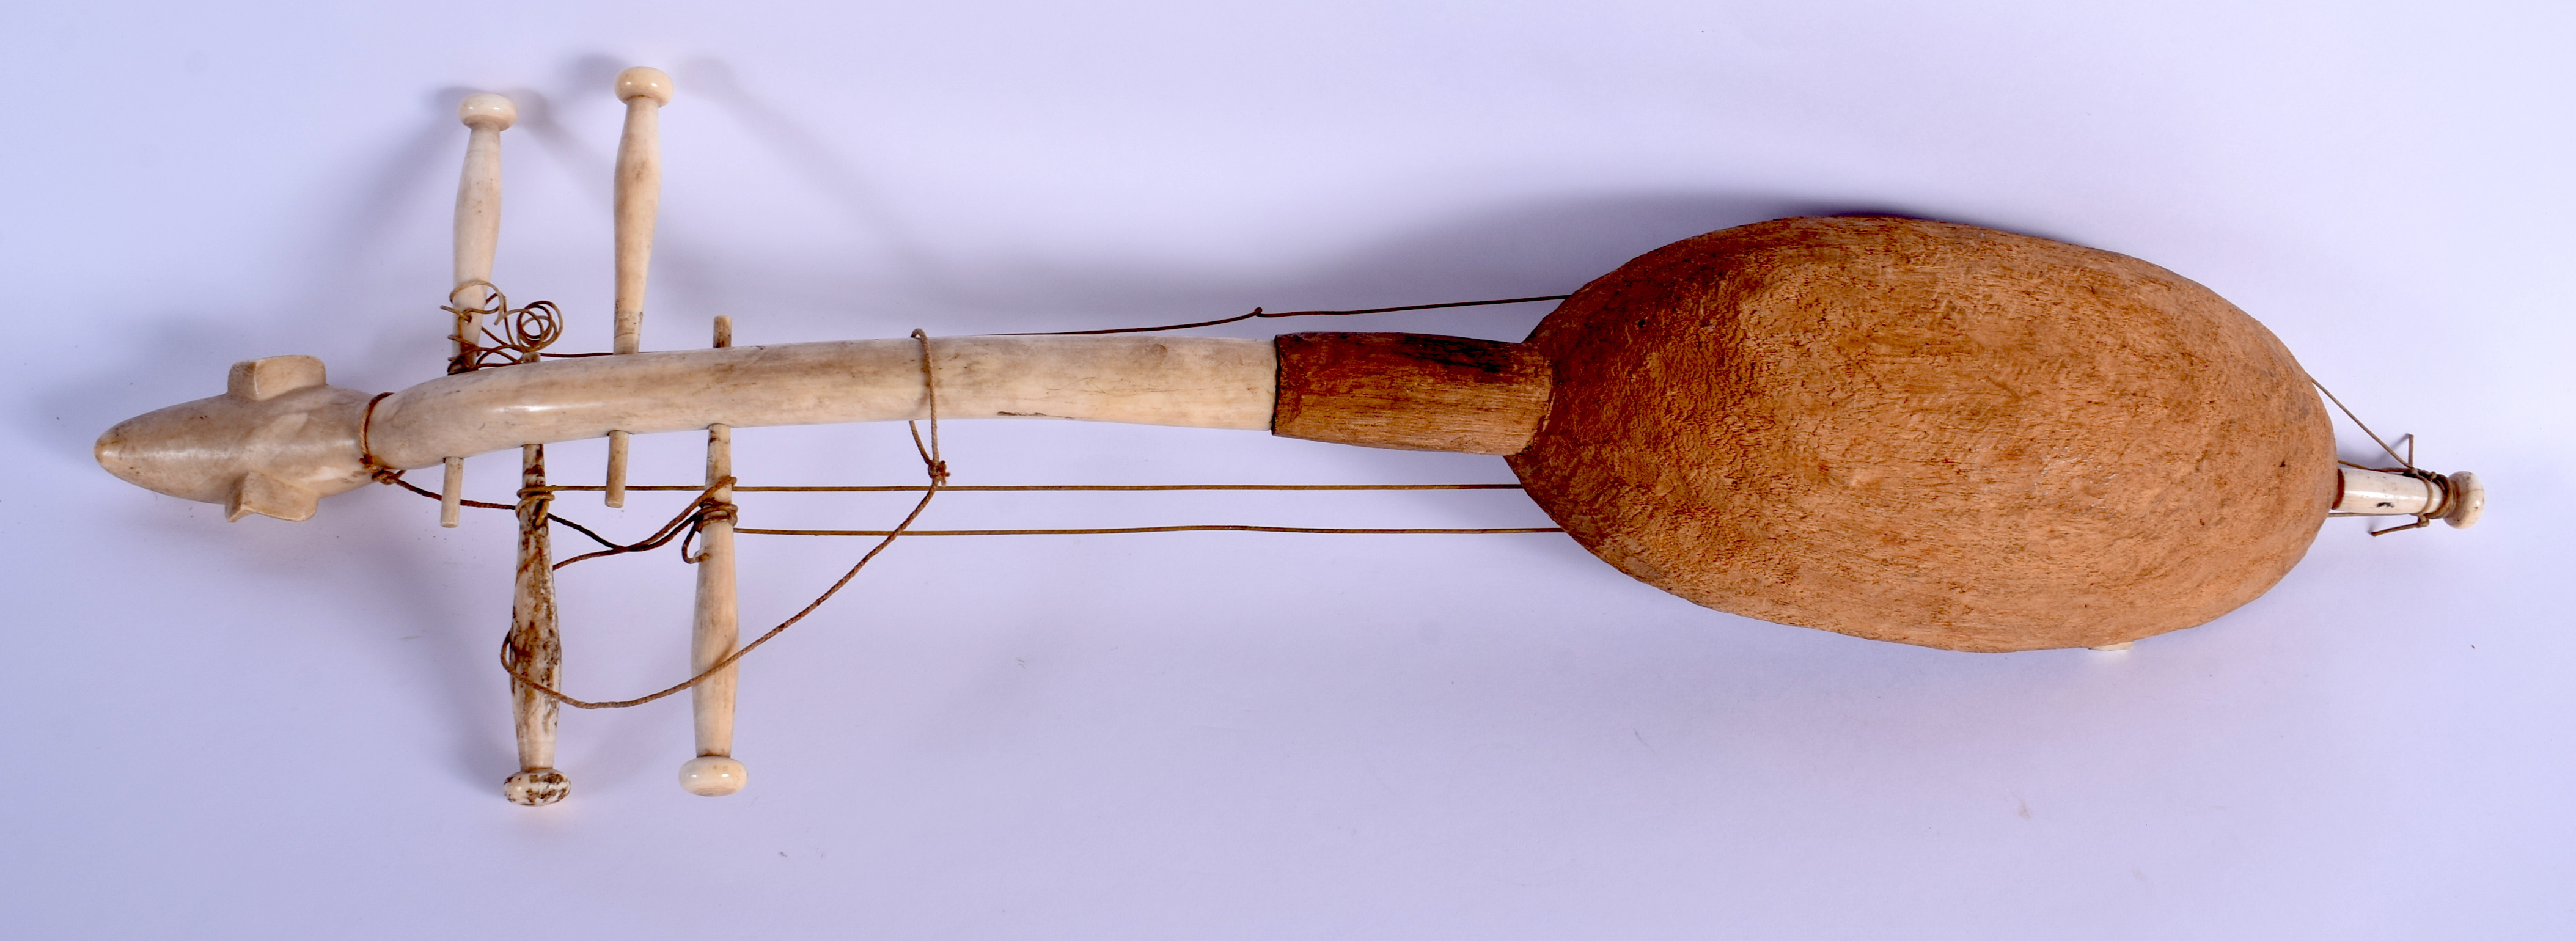 AN EARLY 20TH CENTURY AFRICAN CARVED IVORY AND WOOD INSTRUMENT of figural form. 54 cm long. - Image 2 of 3